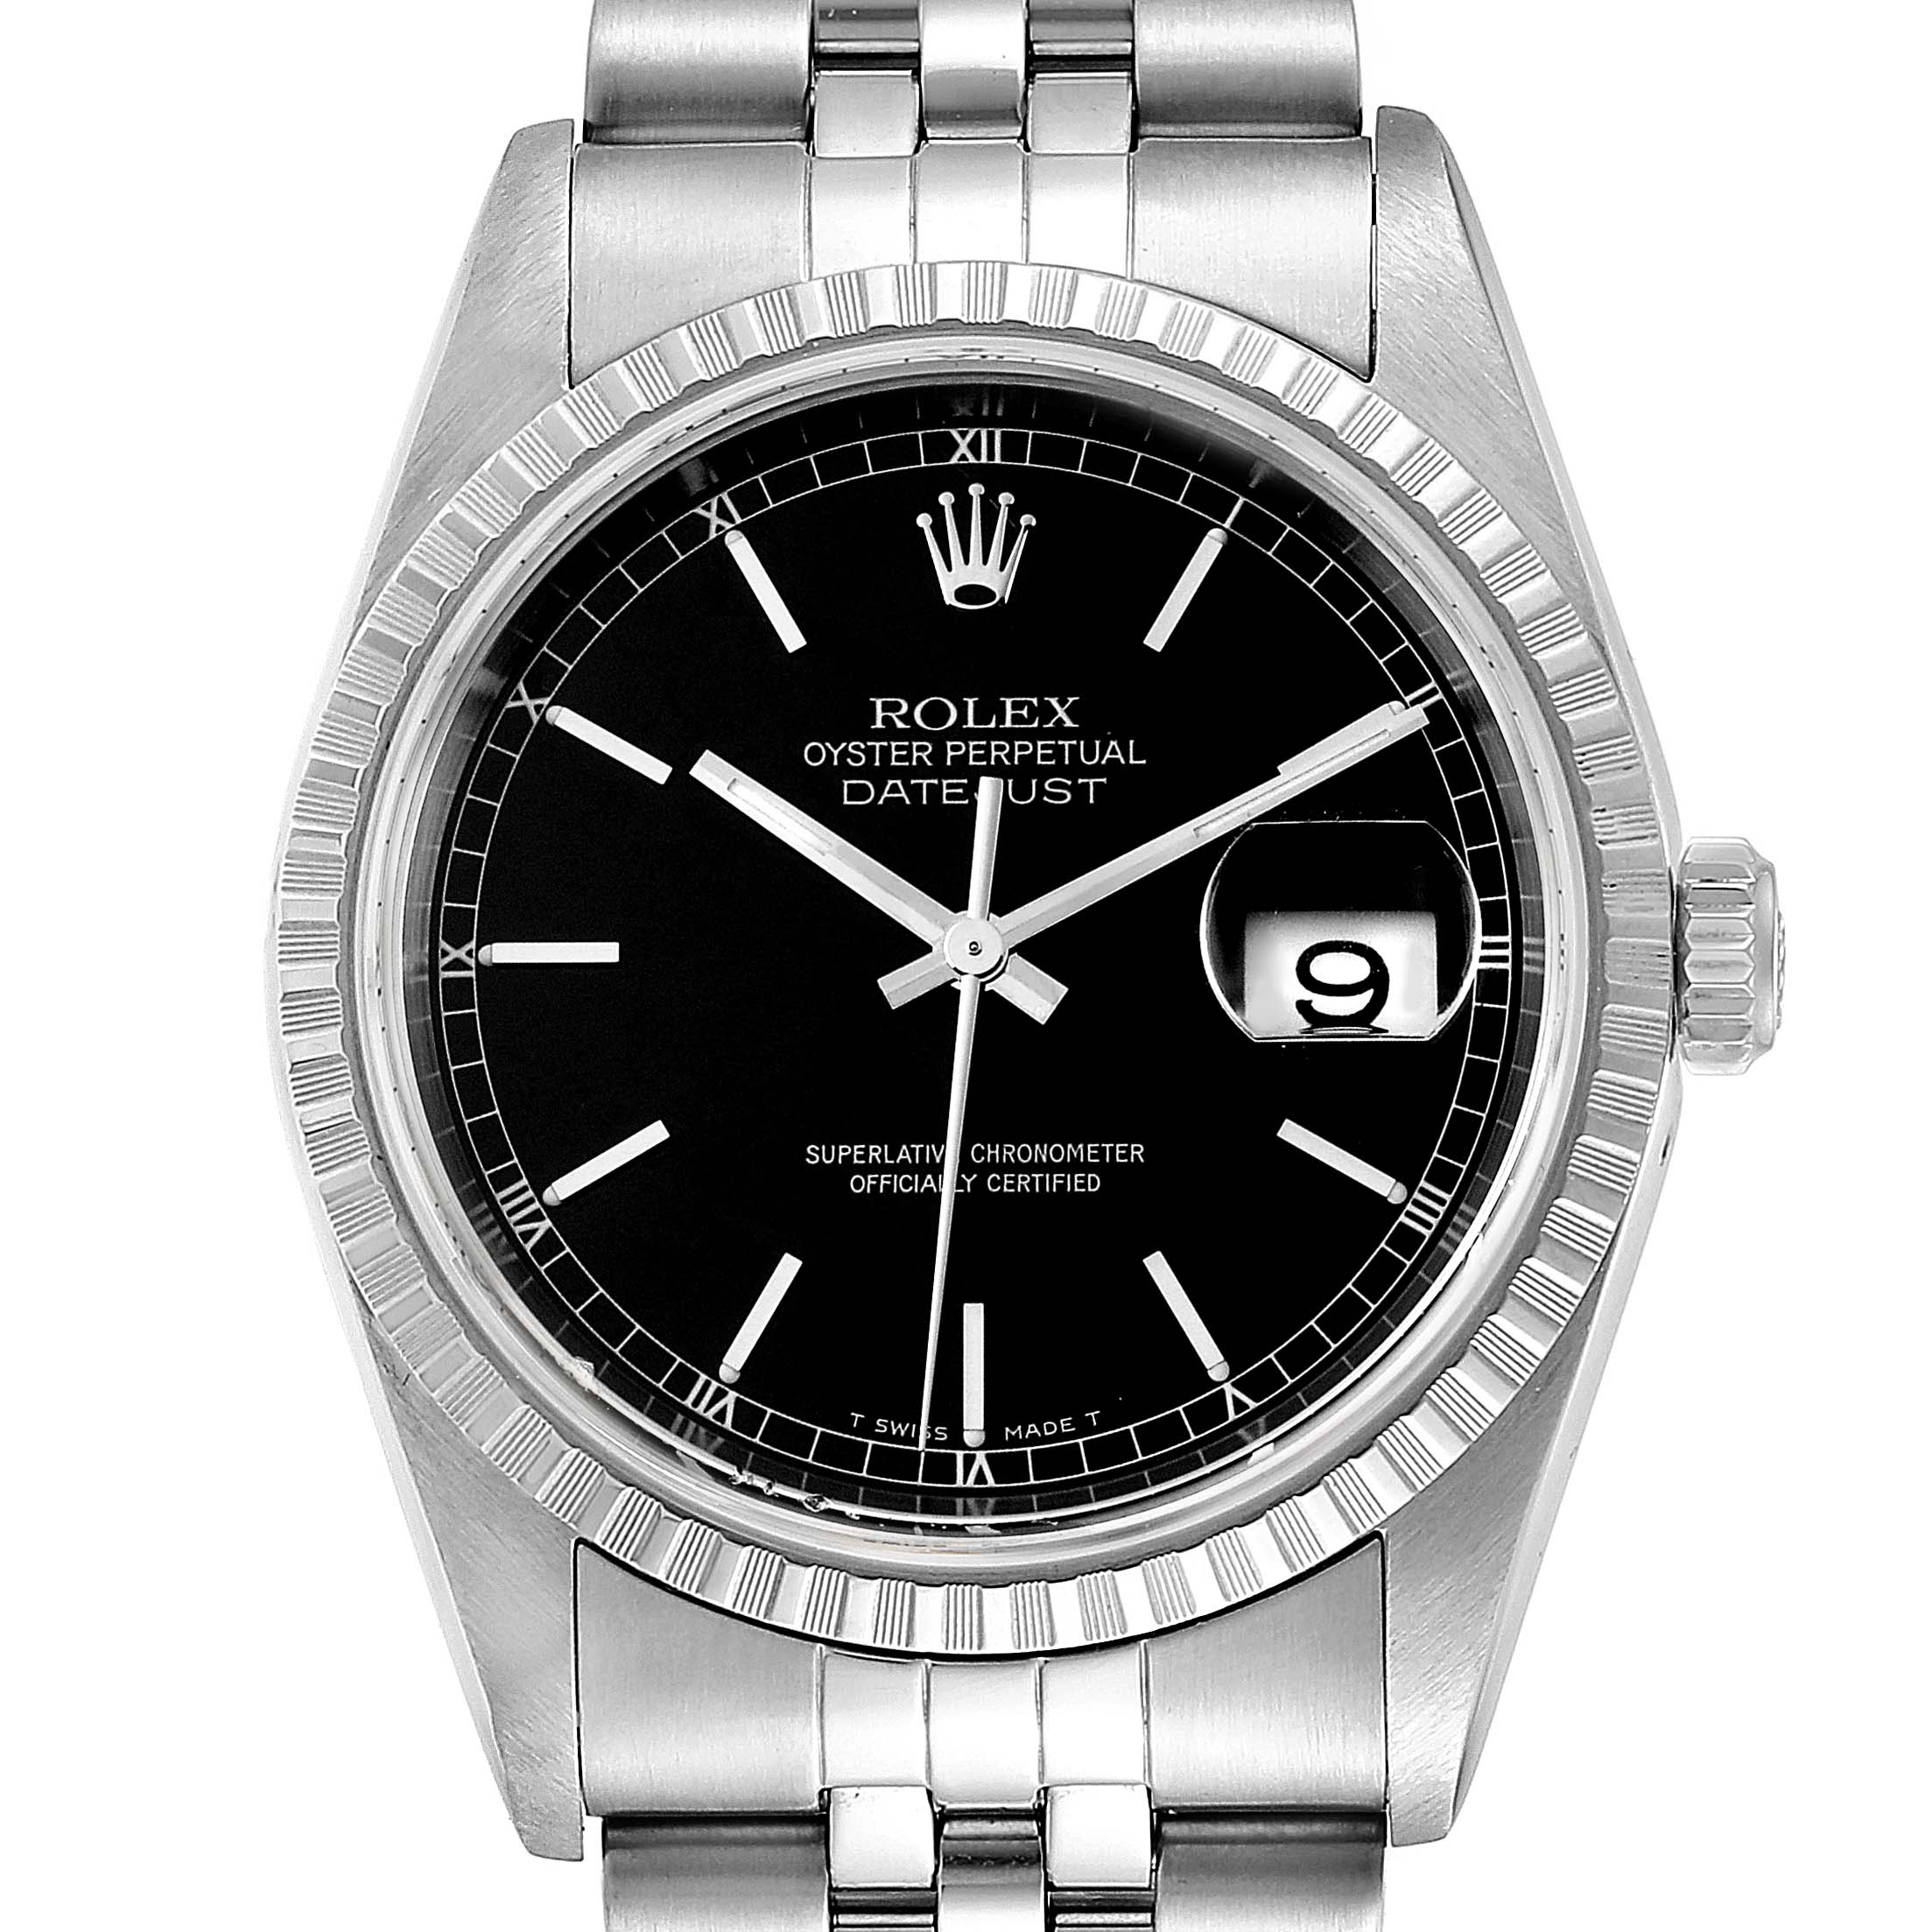 Photo of Rolex Datejust 36mm Black Dial Jubilee Bracelet Steel Mens Watch 16220